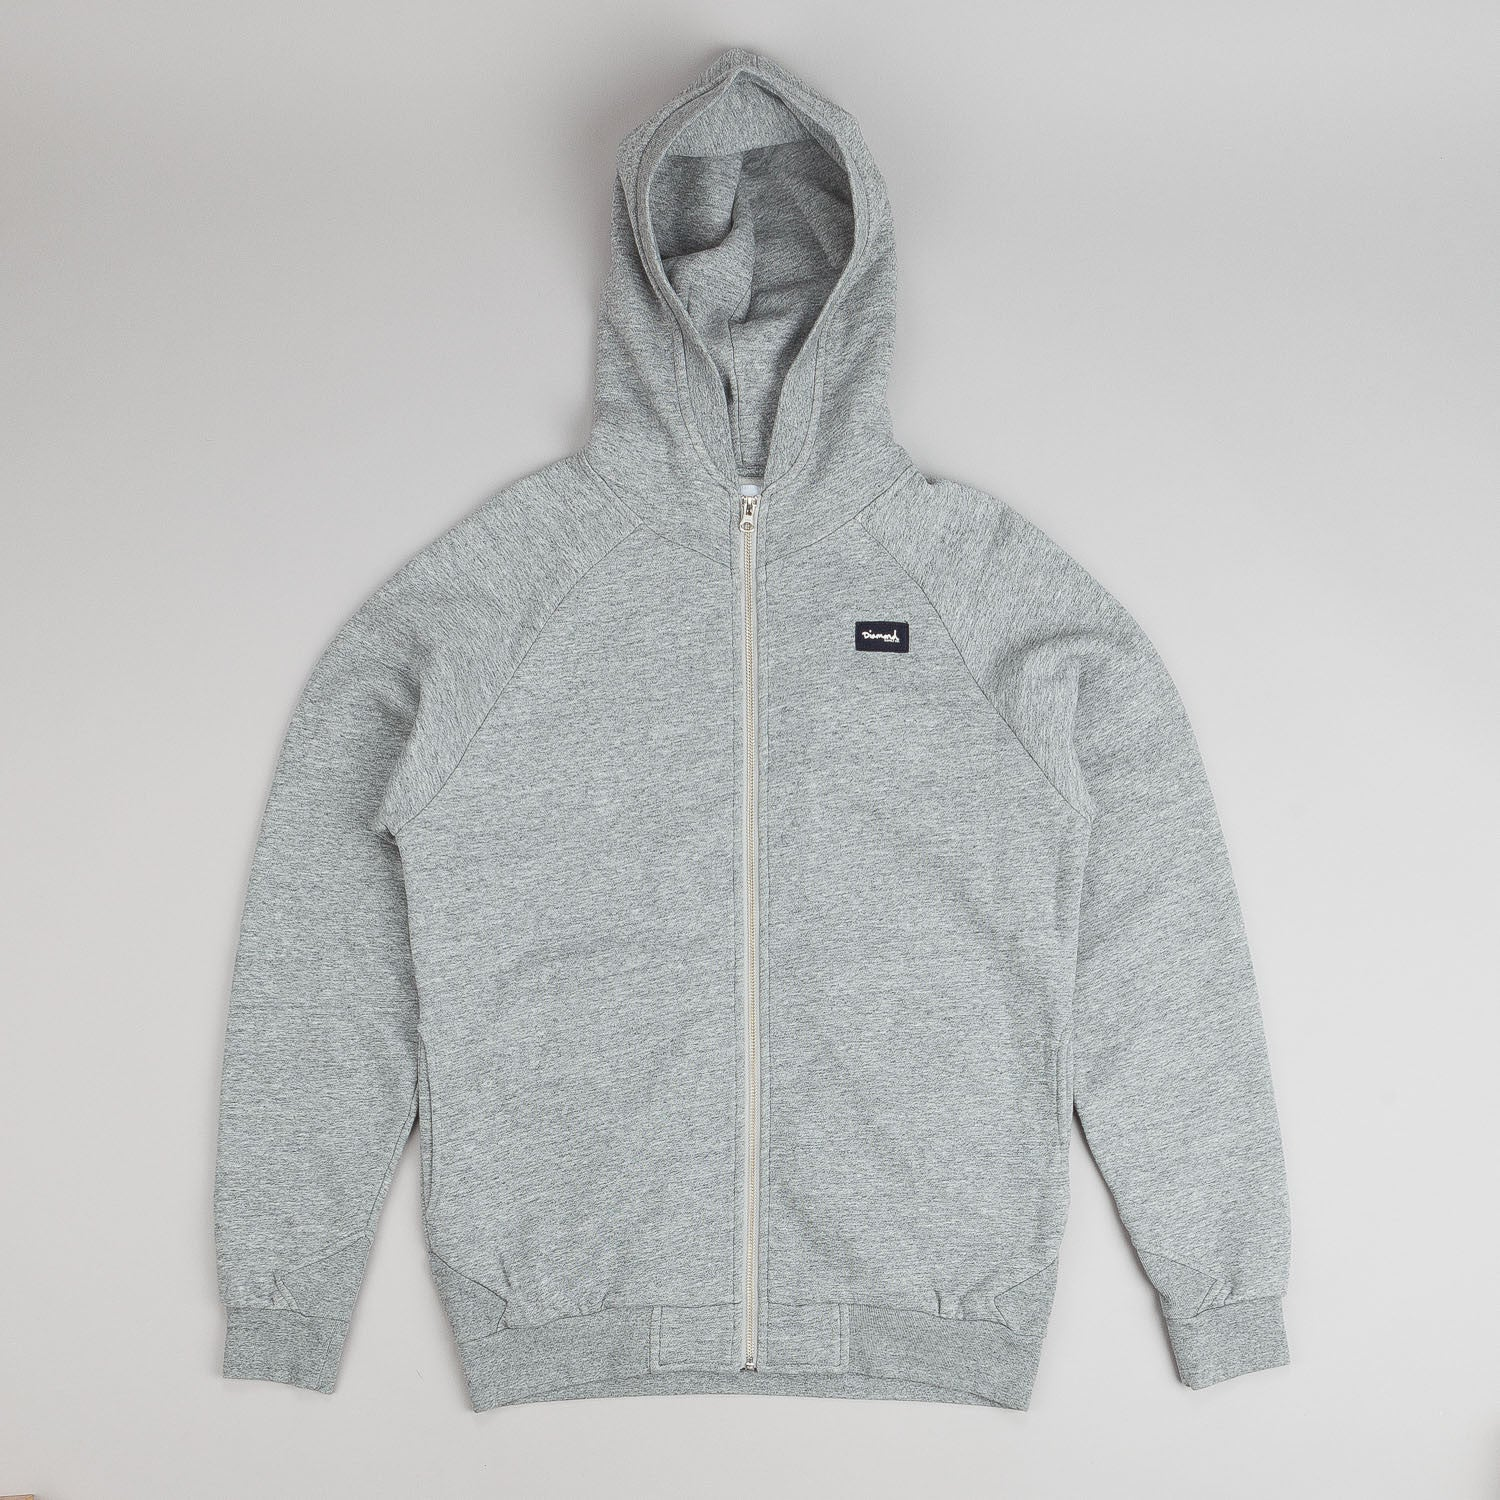 Diamond Hookie Zip Hooded Sweatshirt